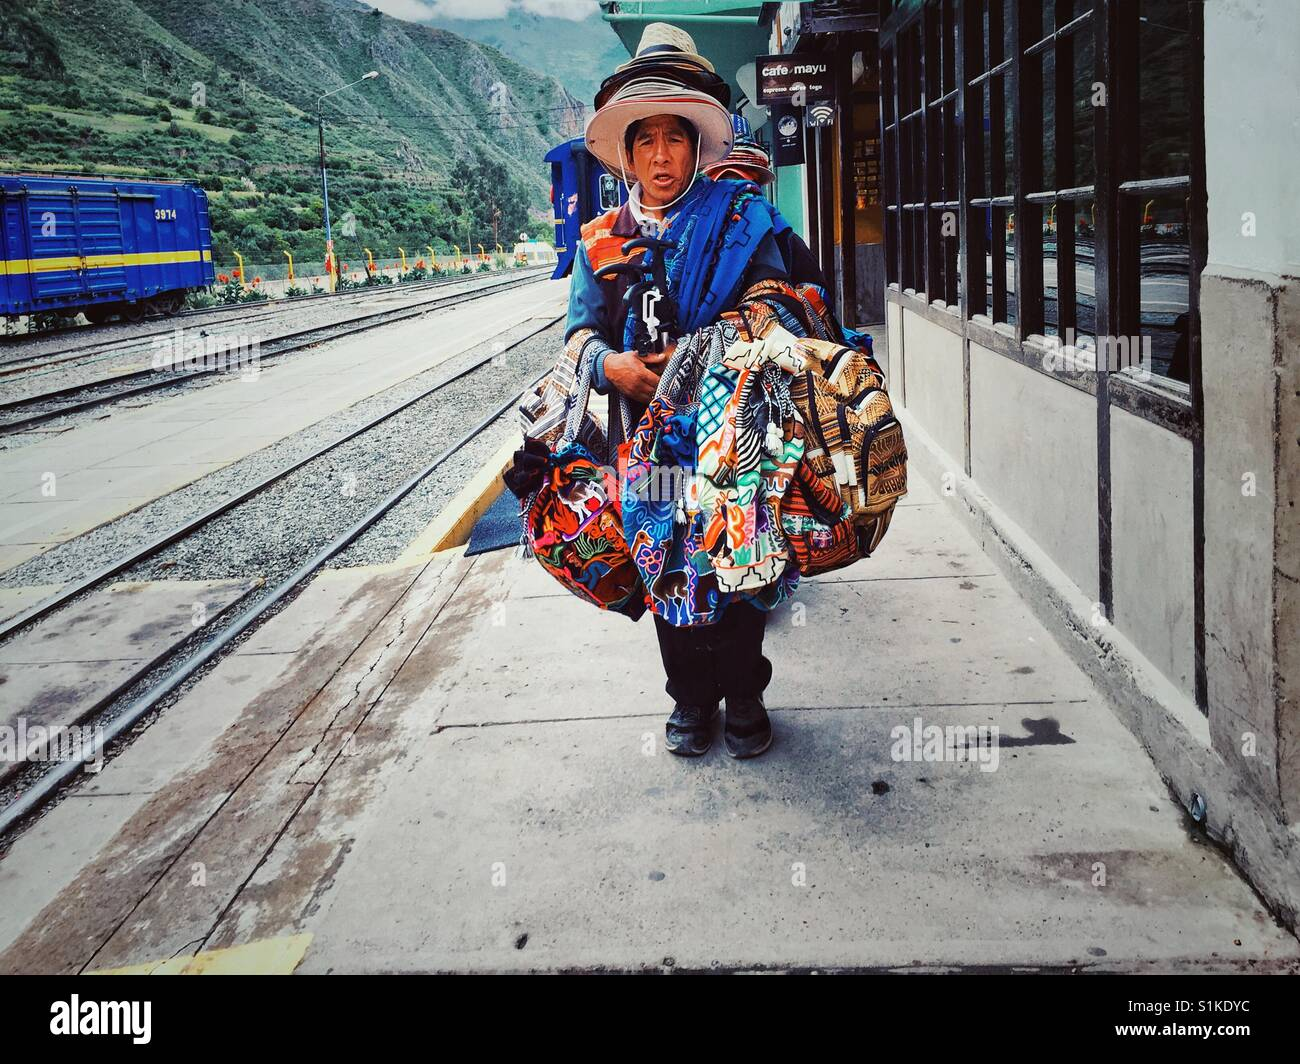 Peruvian traditional textile seller carrying his goods on a train station in Ollantaytambo - Stock Image